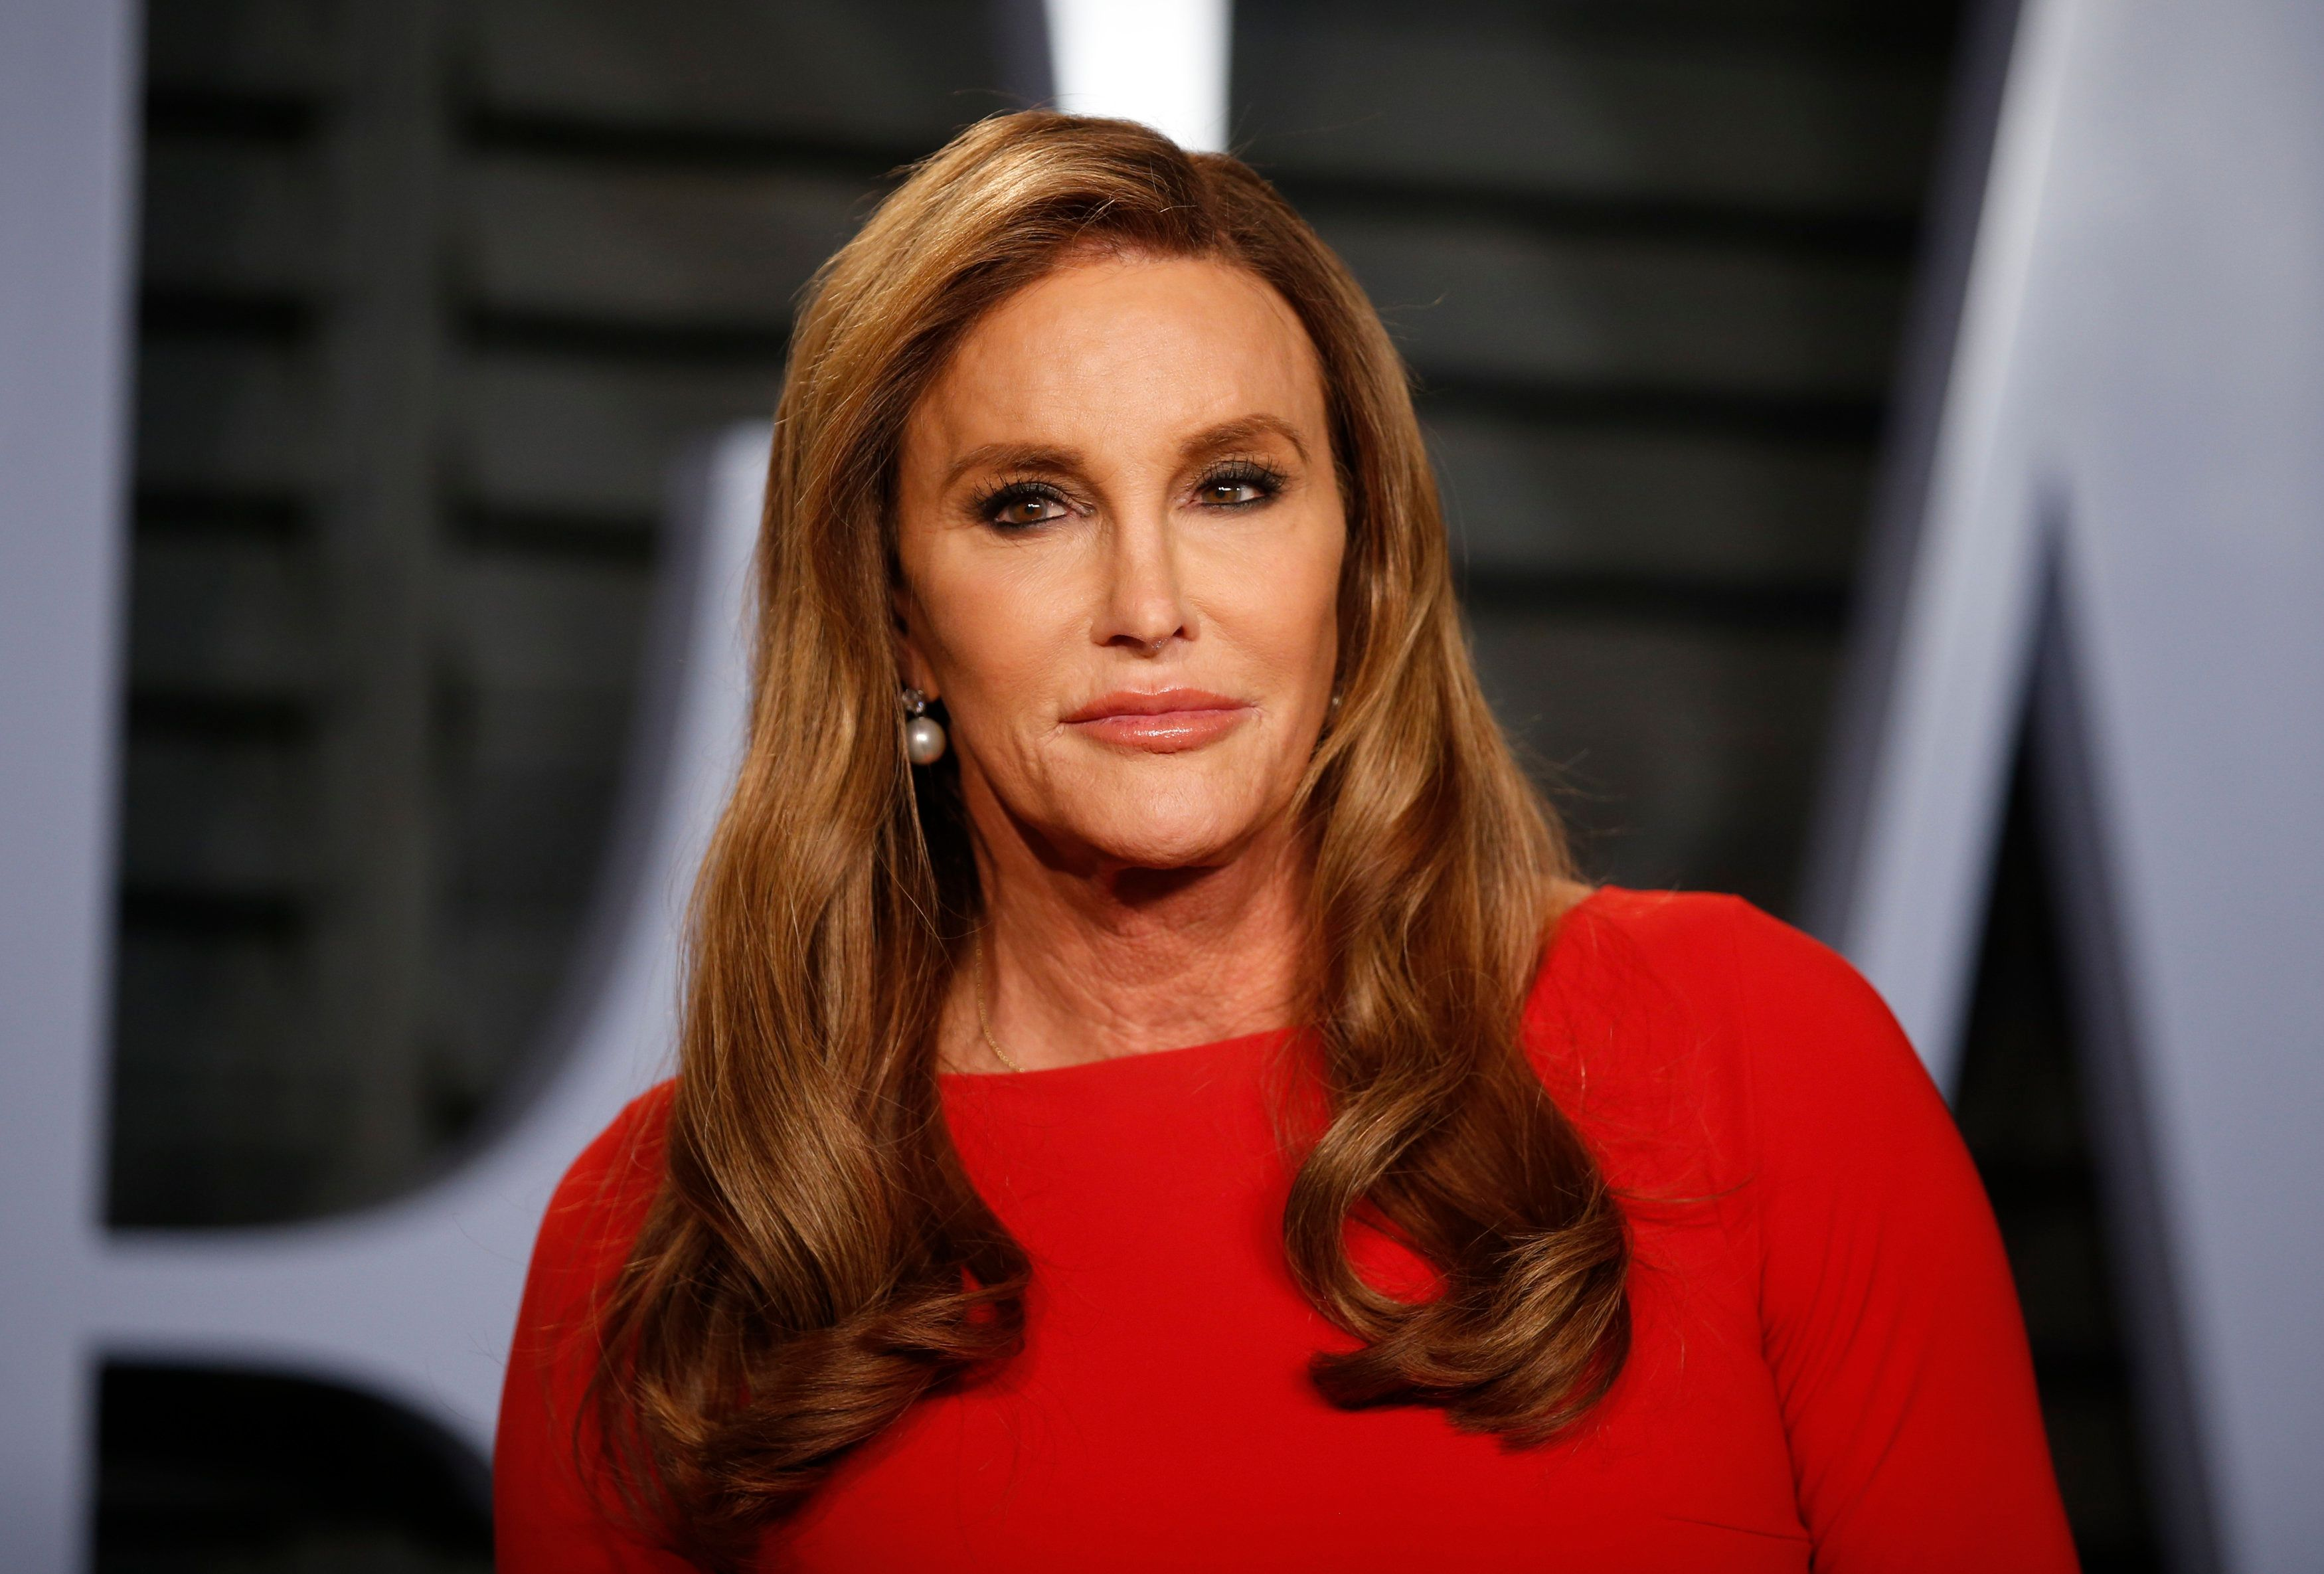 Caitlyn Jenner: Trump Is The 'Worst President We Have Ever Had' On LGBTQ Rights